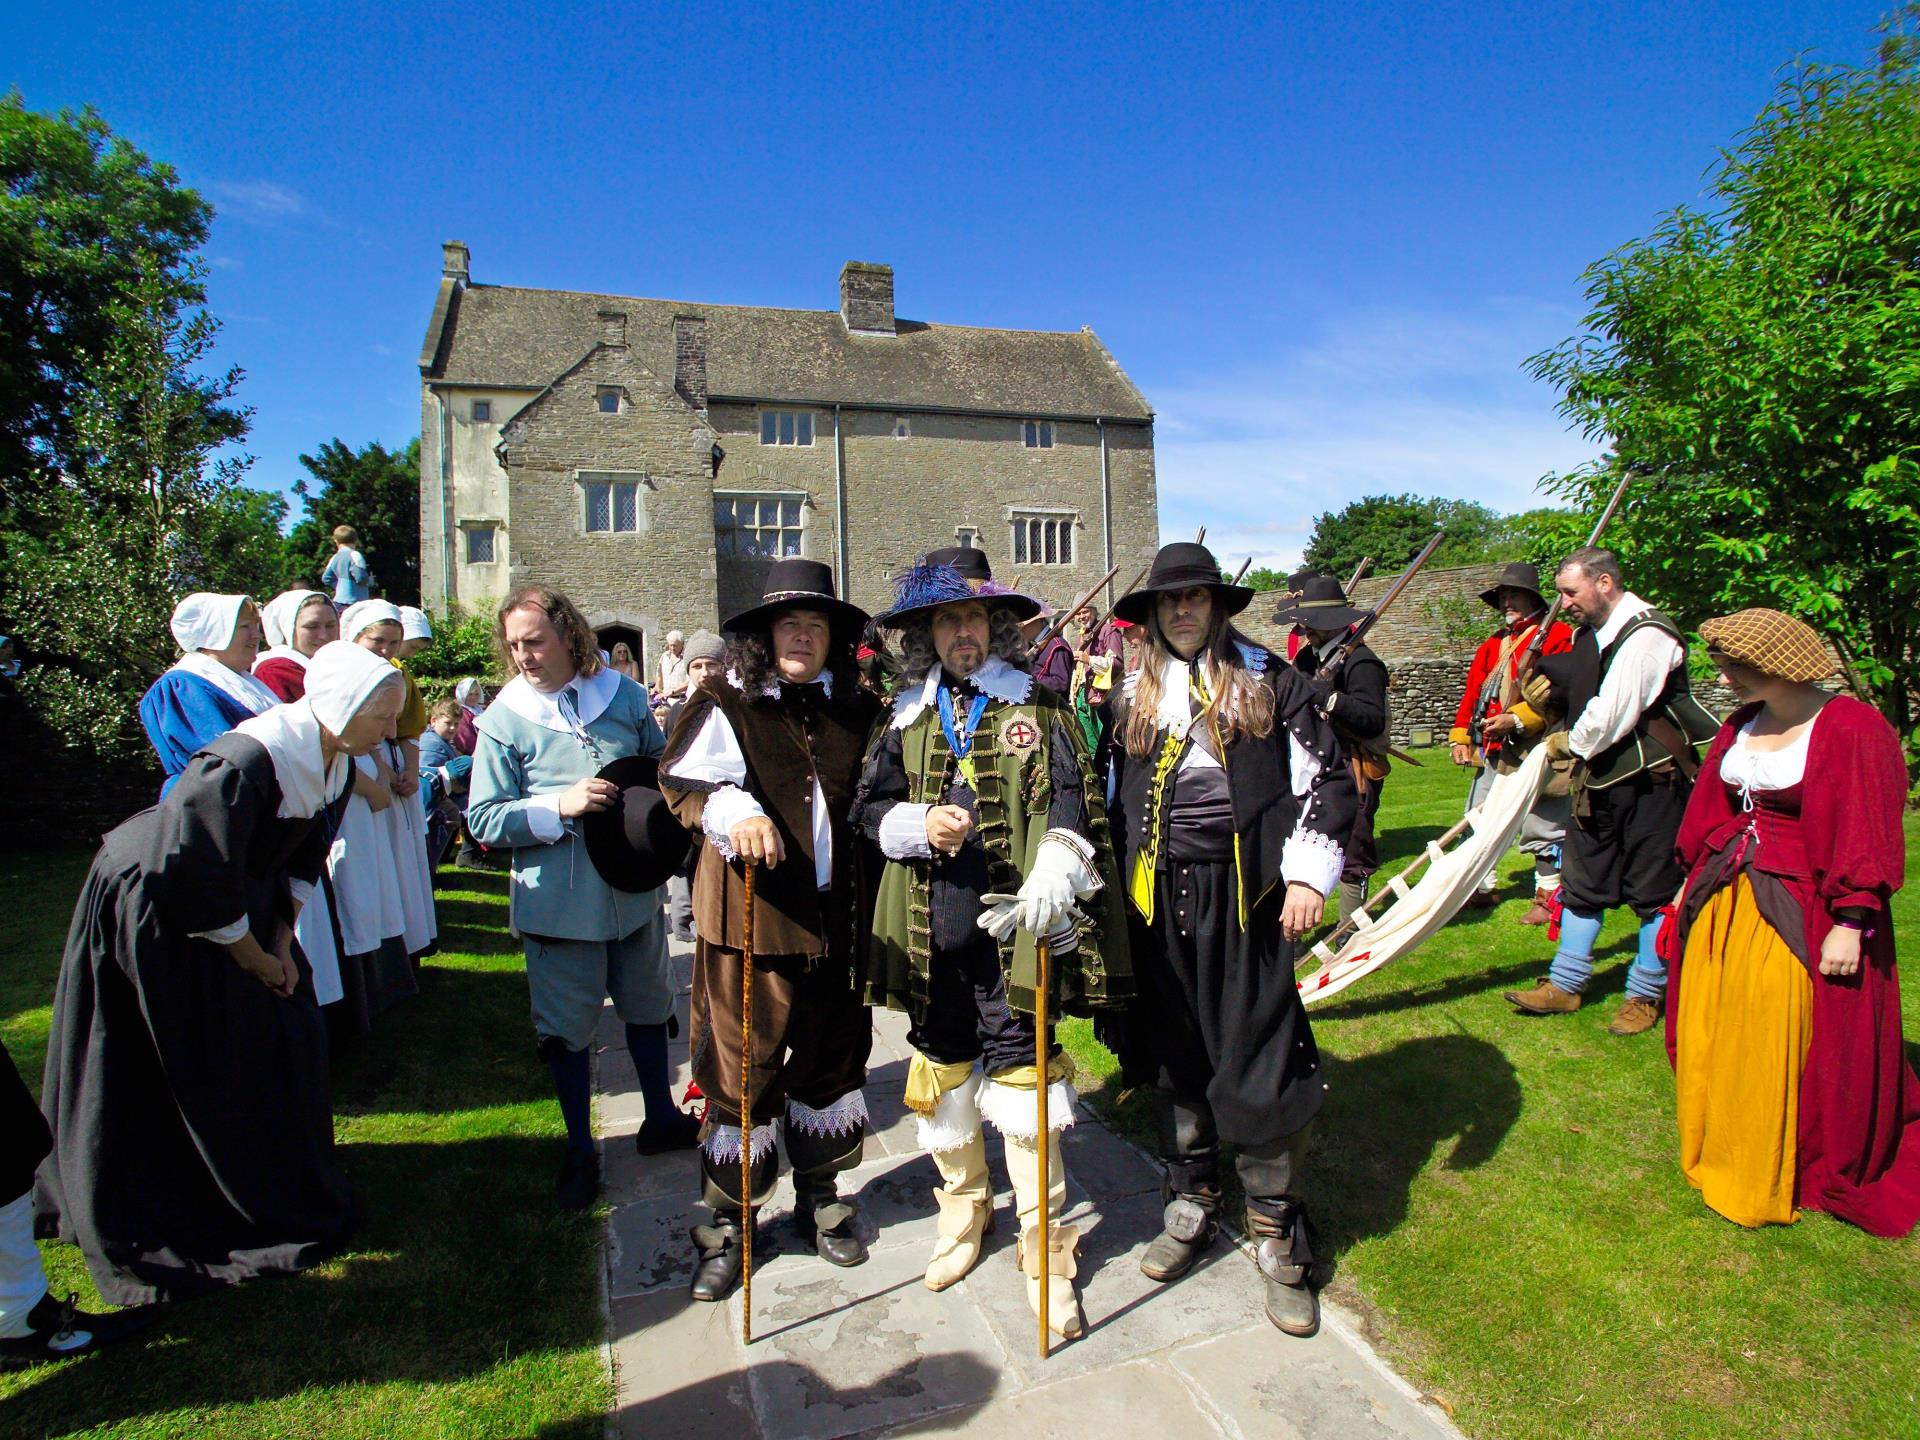 King's Day at Llancaiach Fawr Manor